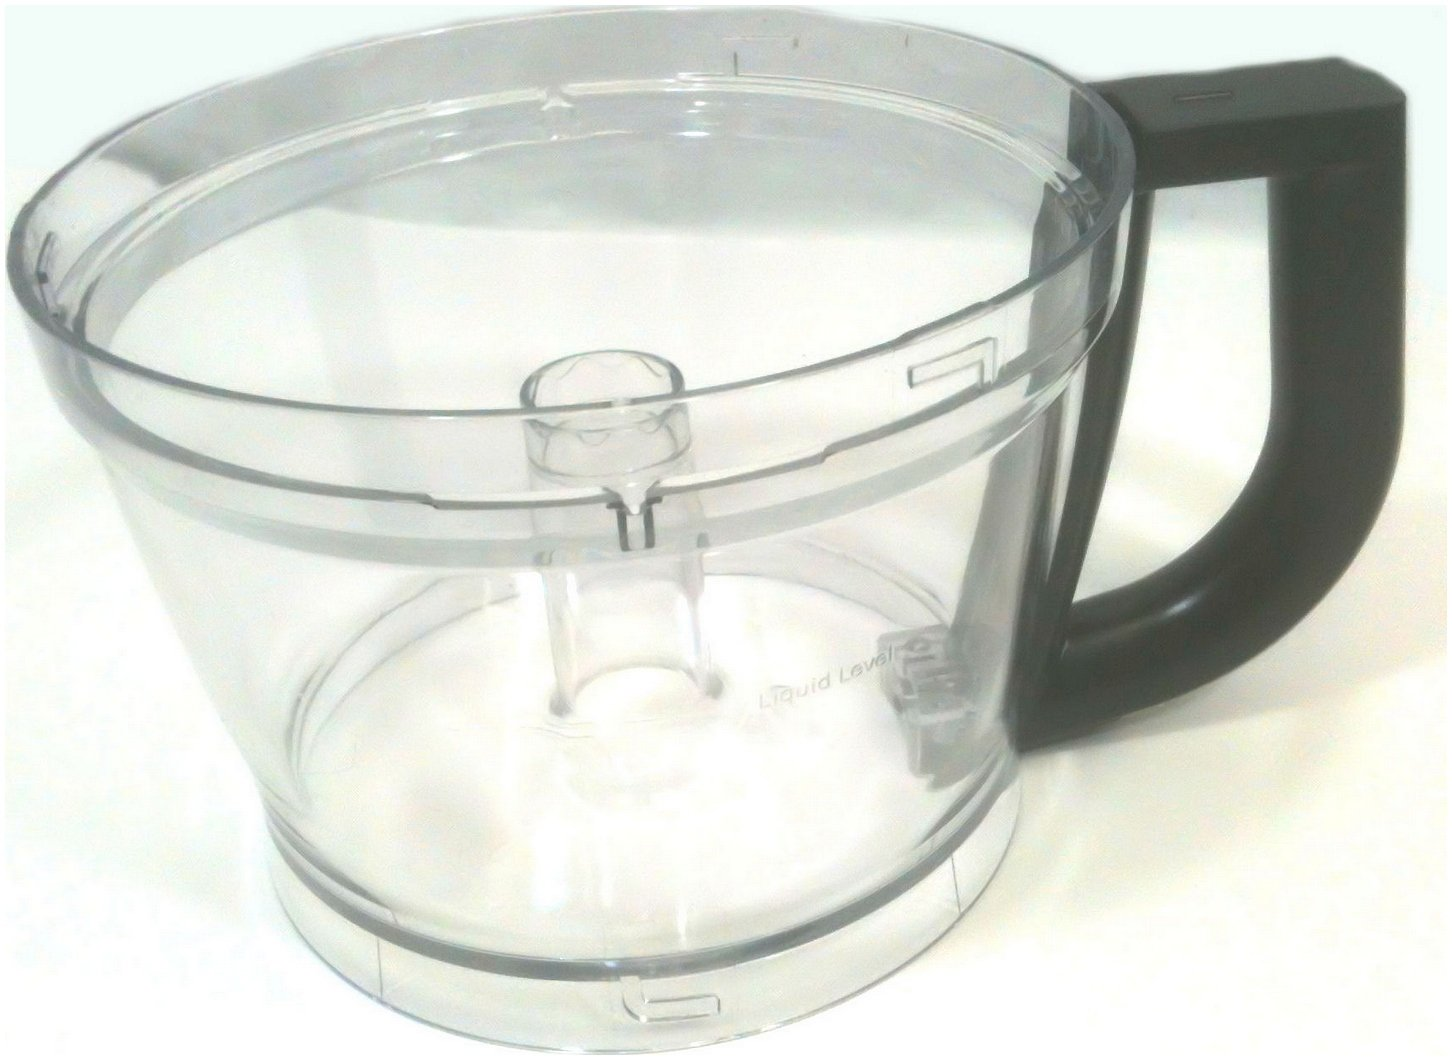 Kitchenaid Replacement Work Bowl (large) W/black Handle, For Kfp1333 - KFP13WBOB